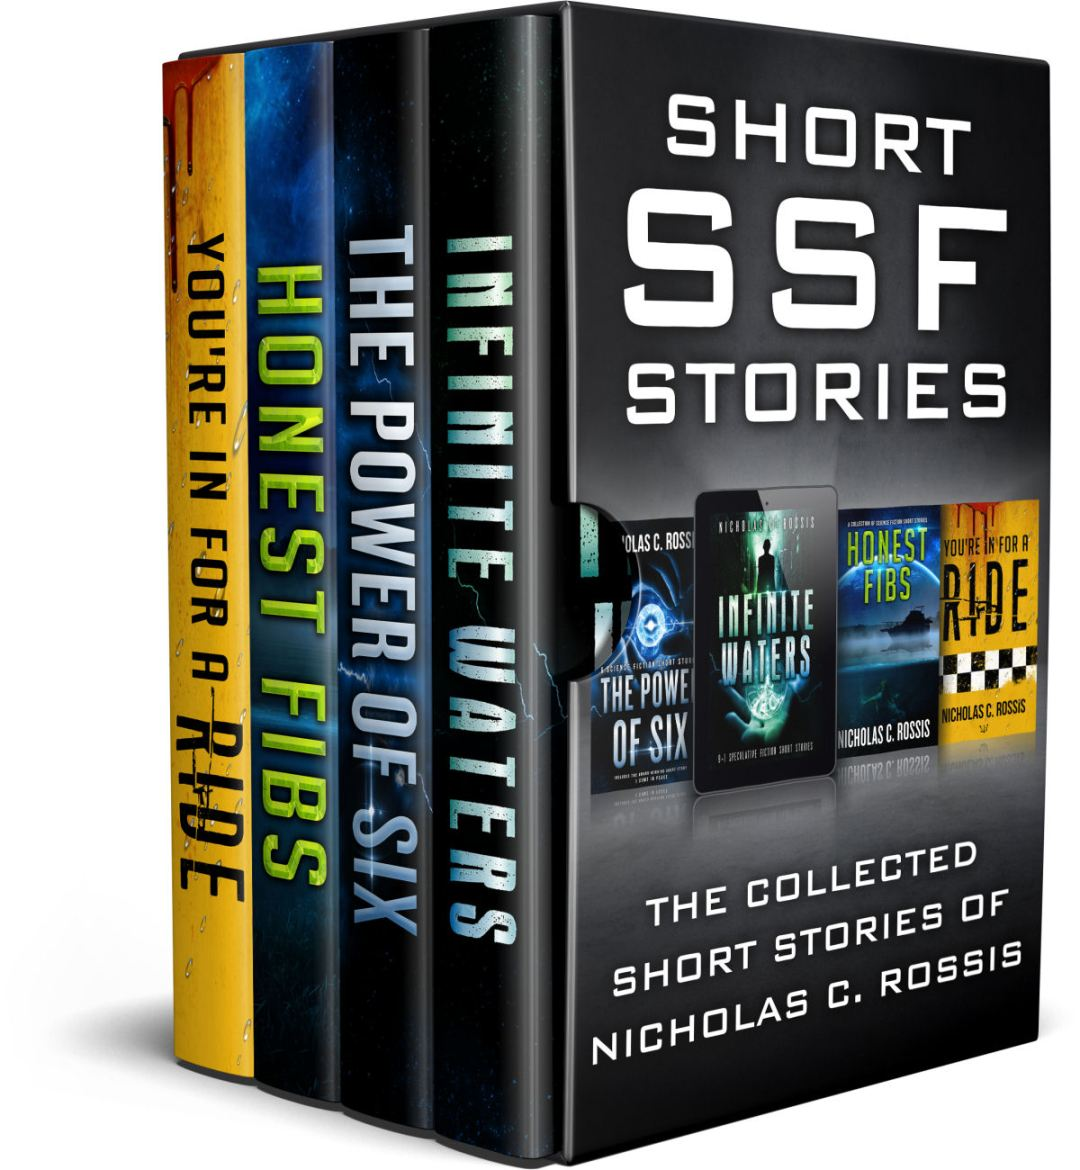 Short Science & Speculative Fiction Stories Bundle | From the reader blog of Nicholas C. Rossis, author of children's books, fantasy and science fiction